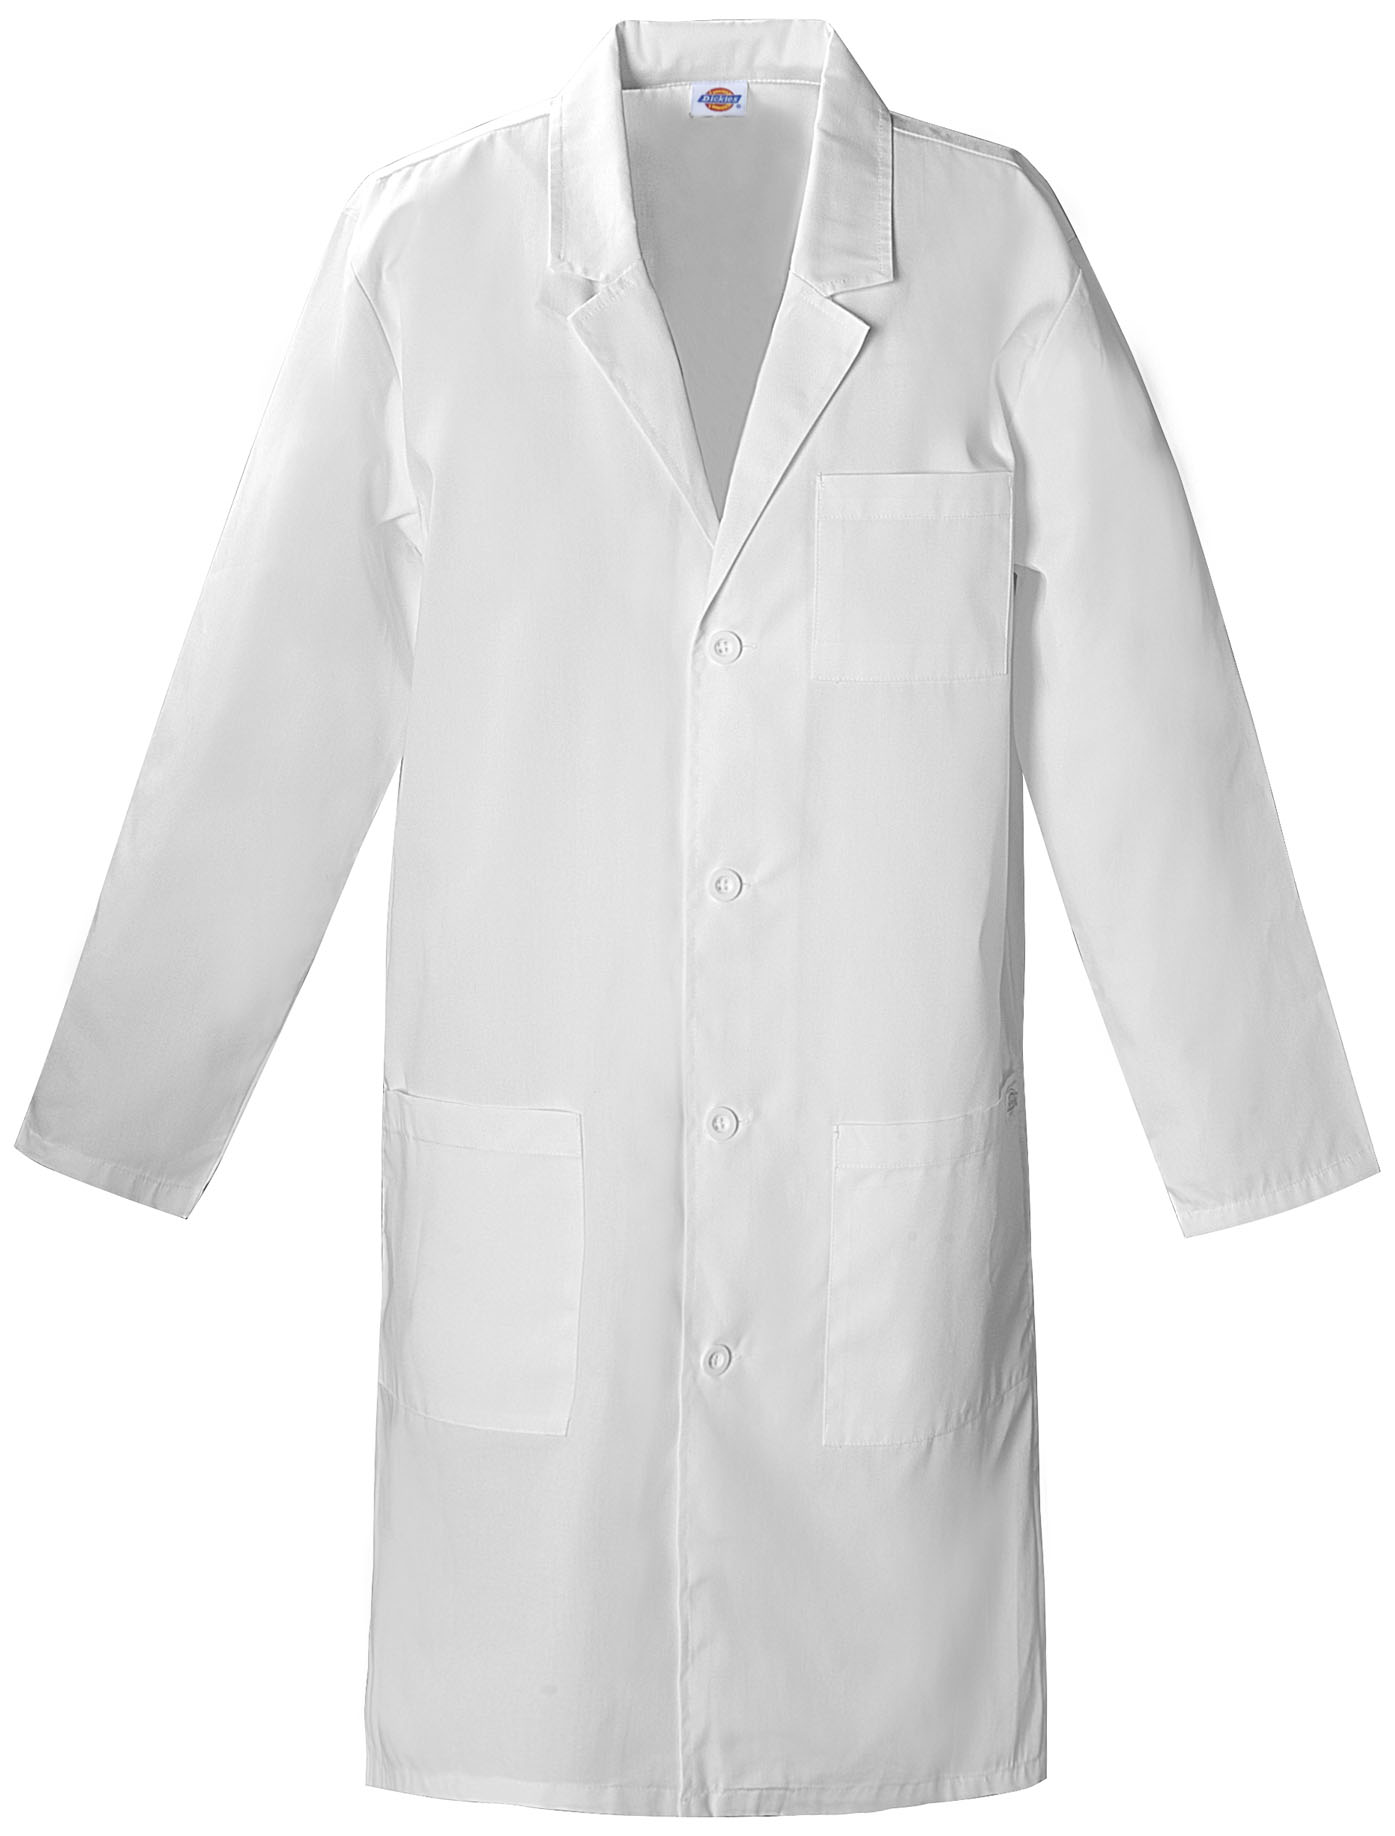 LAB COATS & JACKETS | Uniform States of America